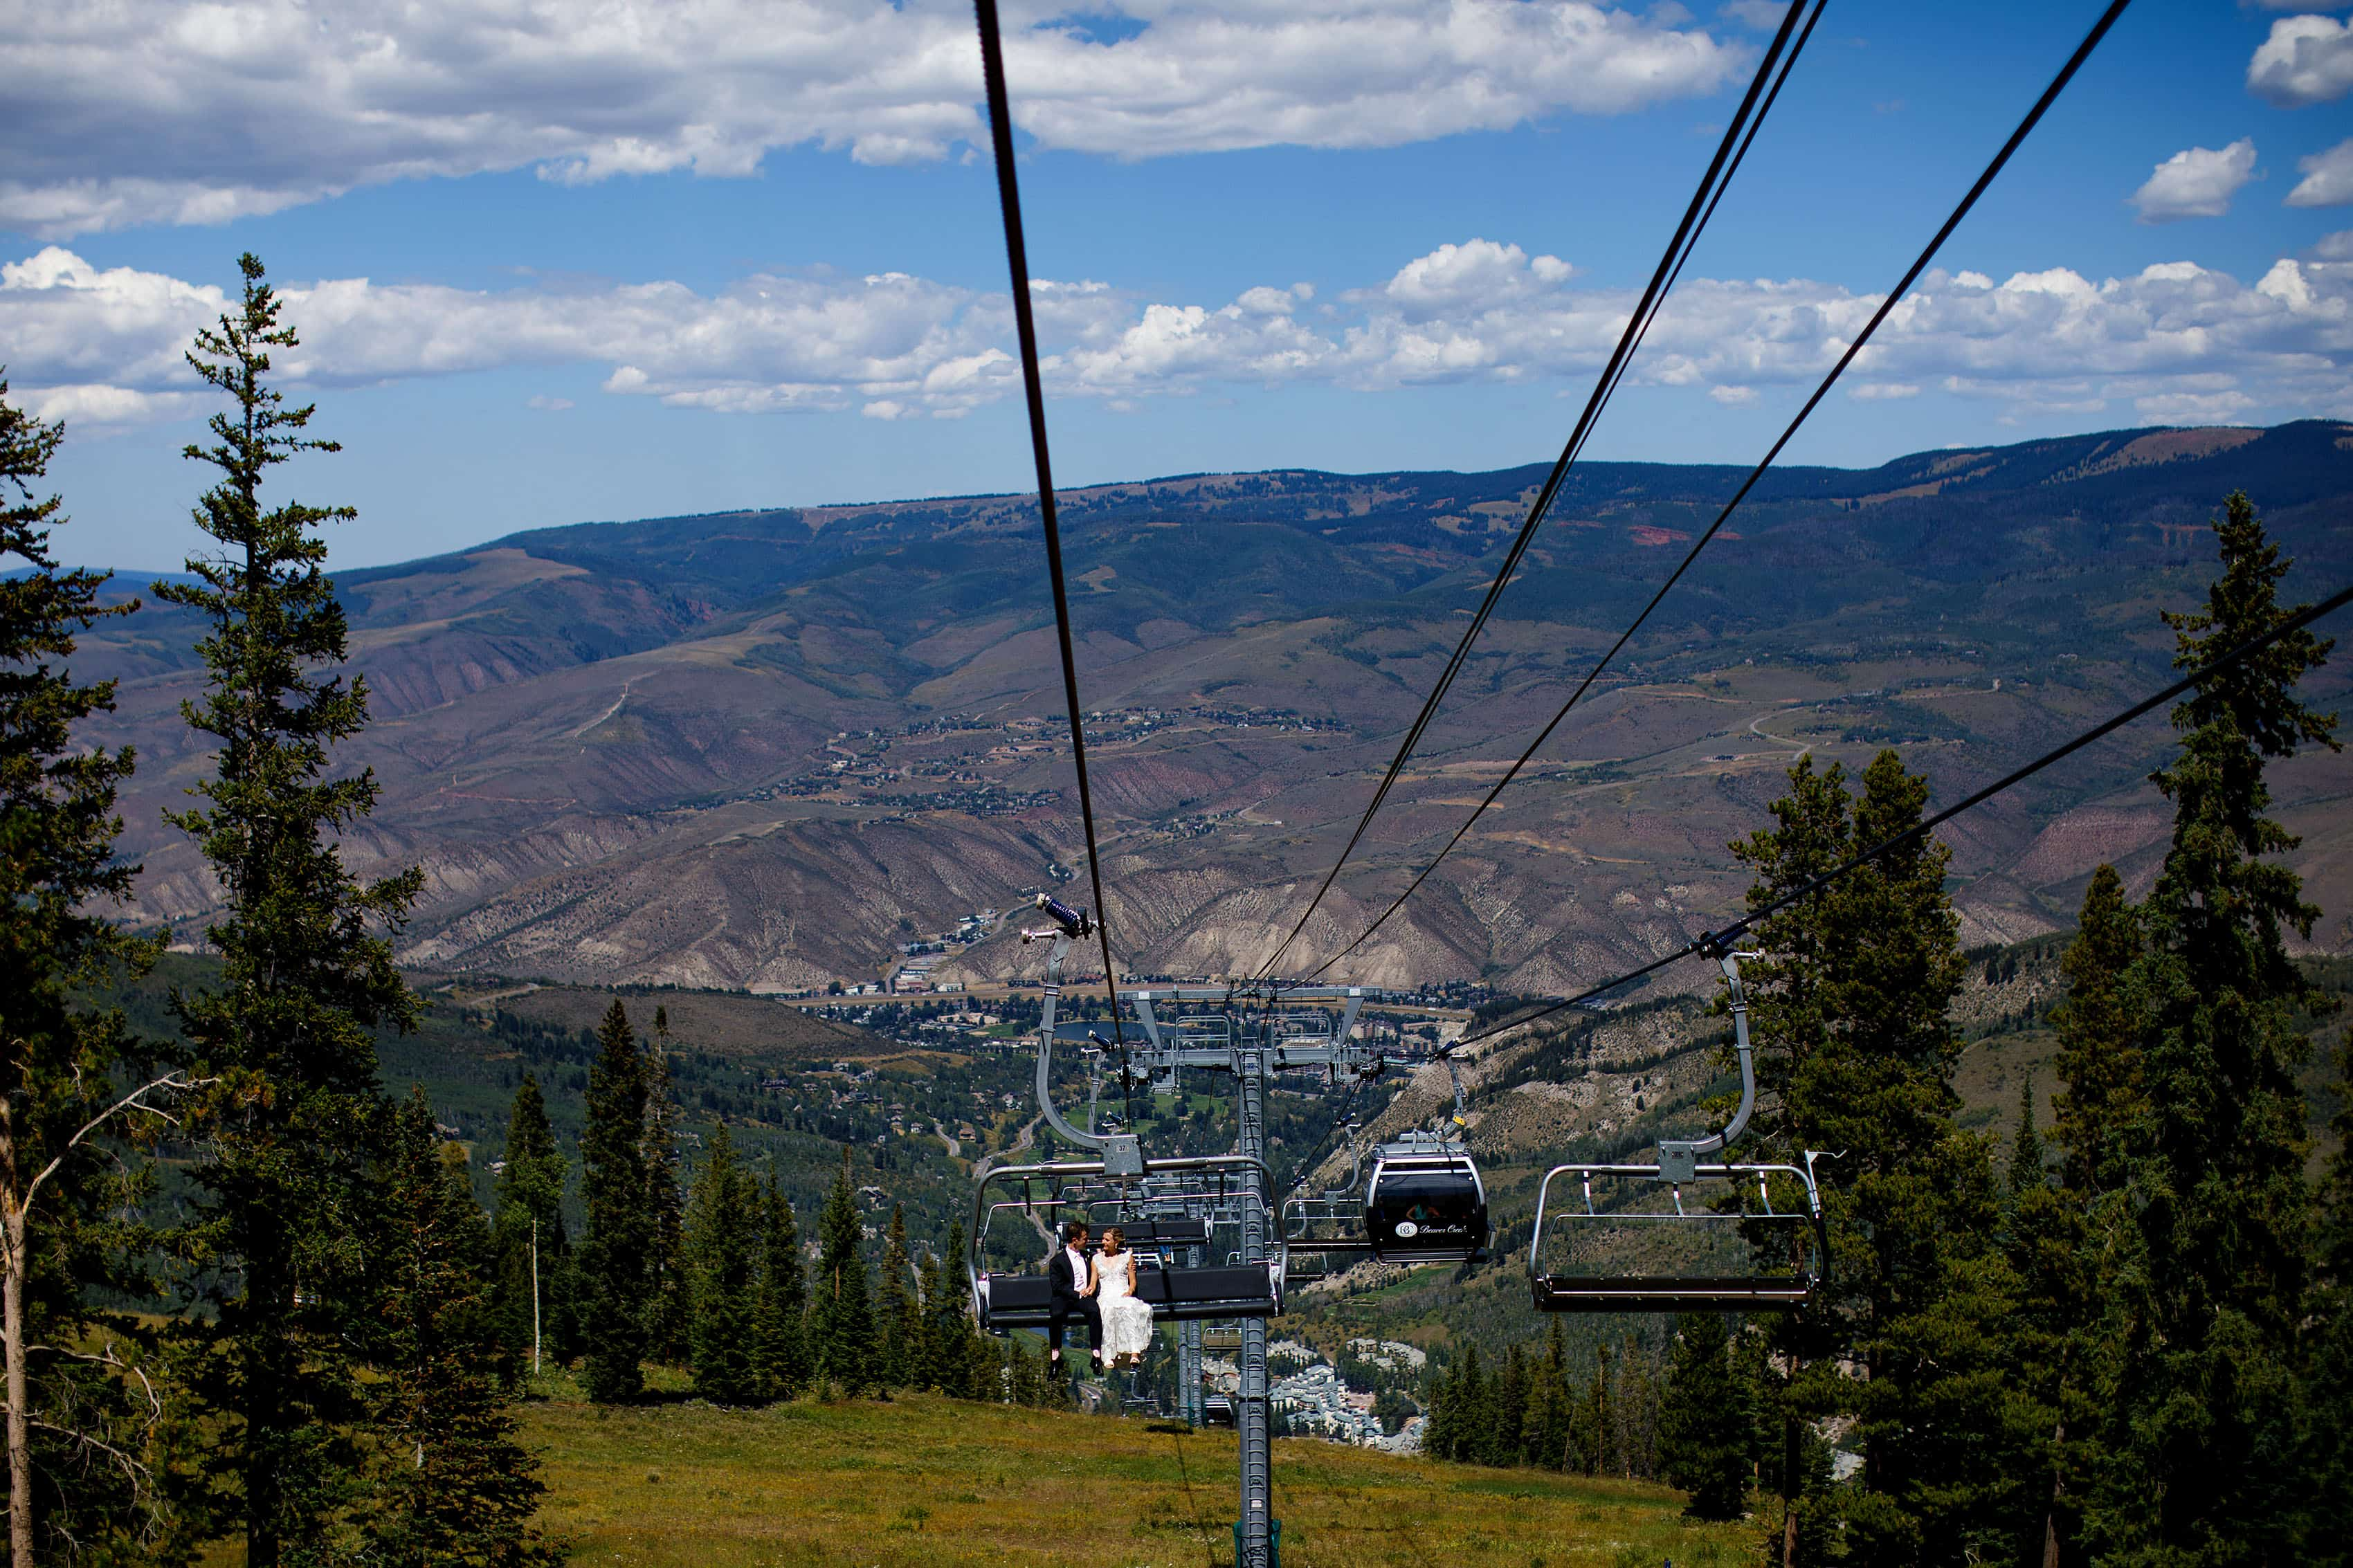 The bride and groom ride the Centennial Express chairlift on their wedding day in Beaver Creek